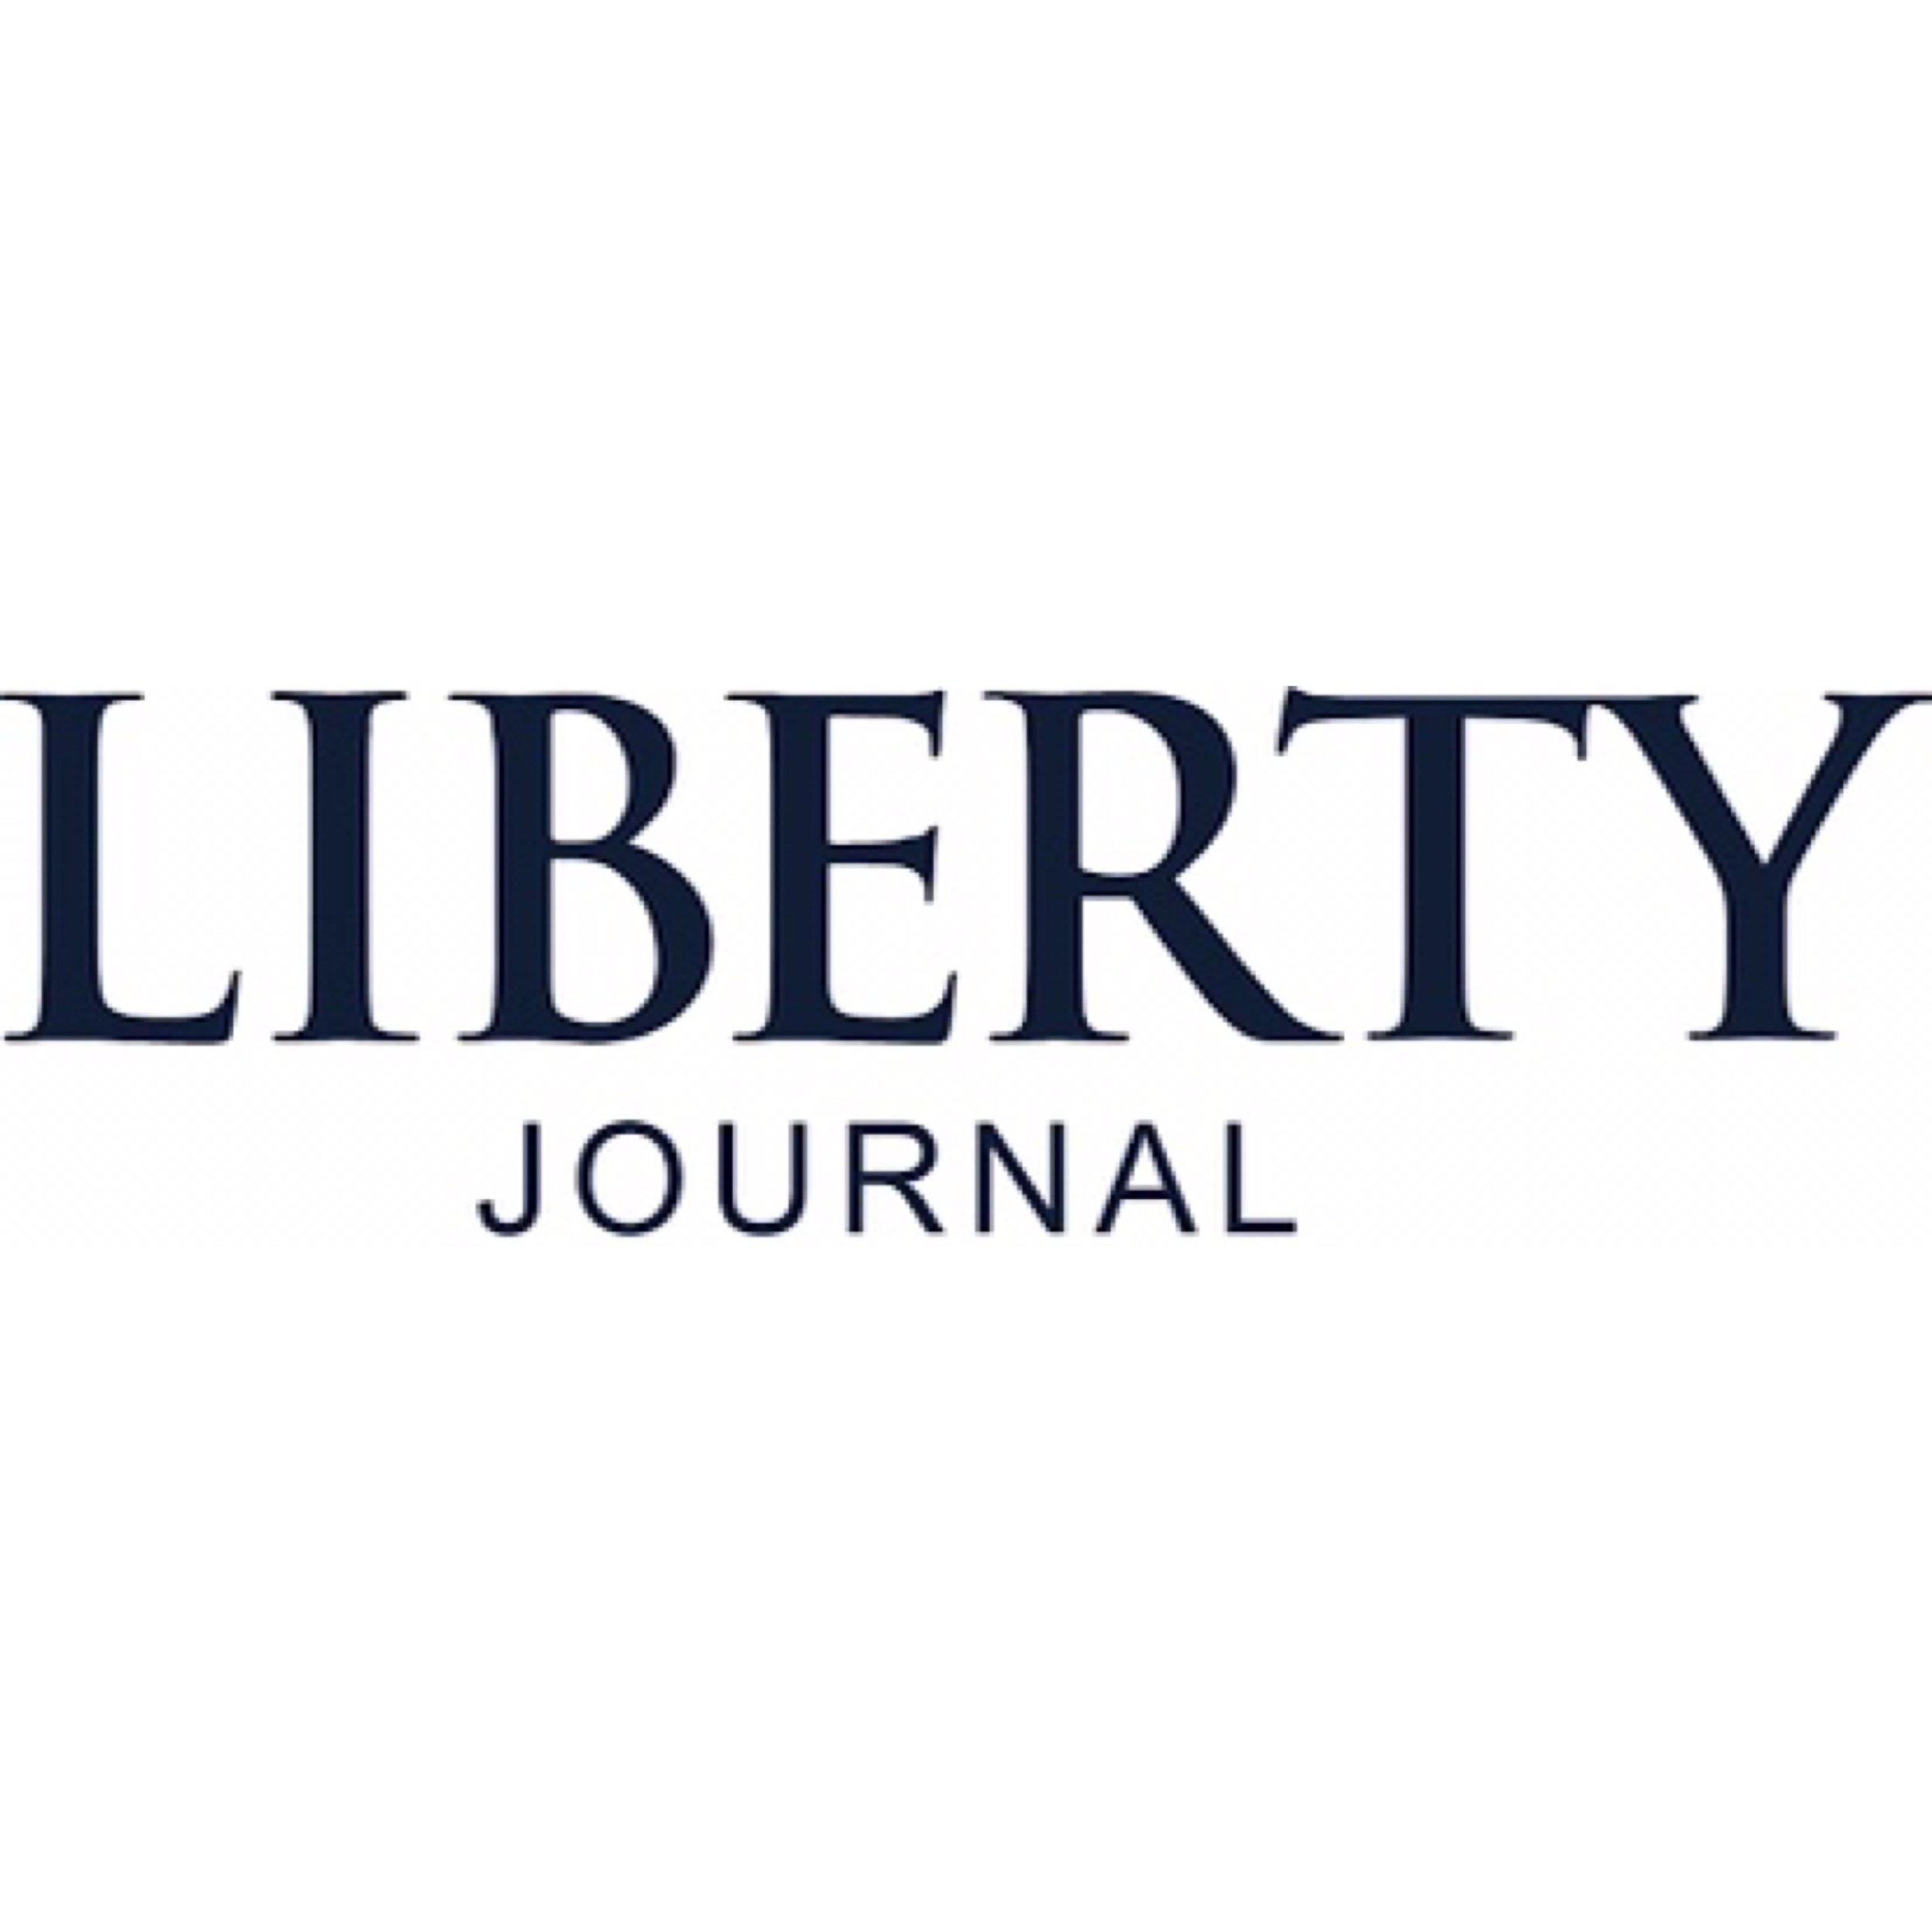 Liberty Journal - Liberty University - Recording Artist Promotes Self-Esteem Through Music